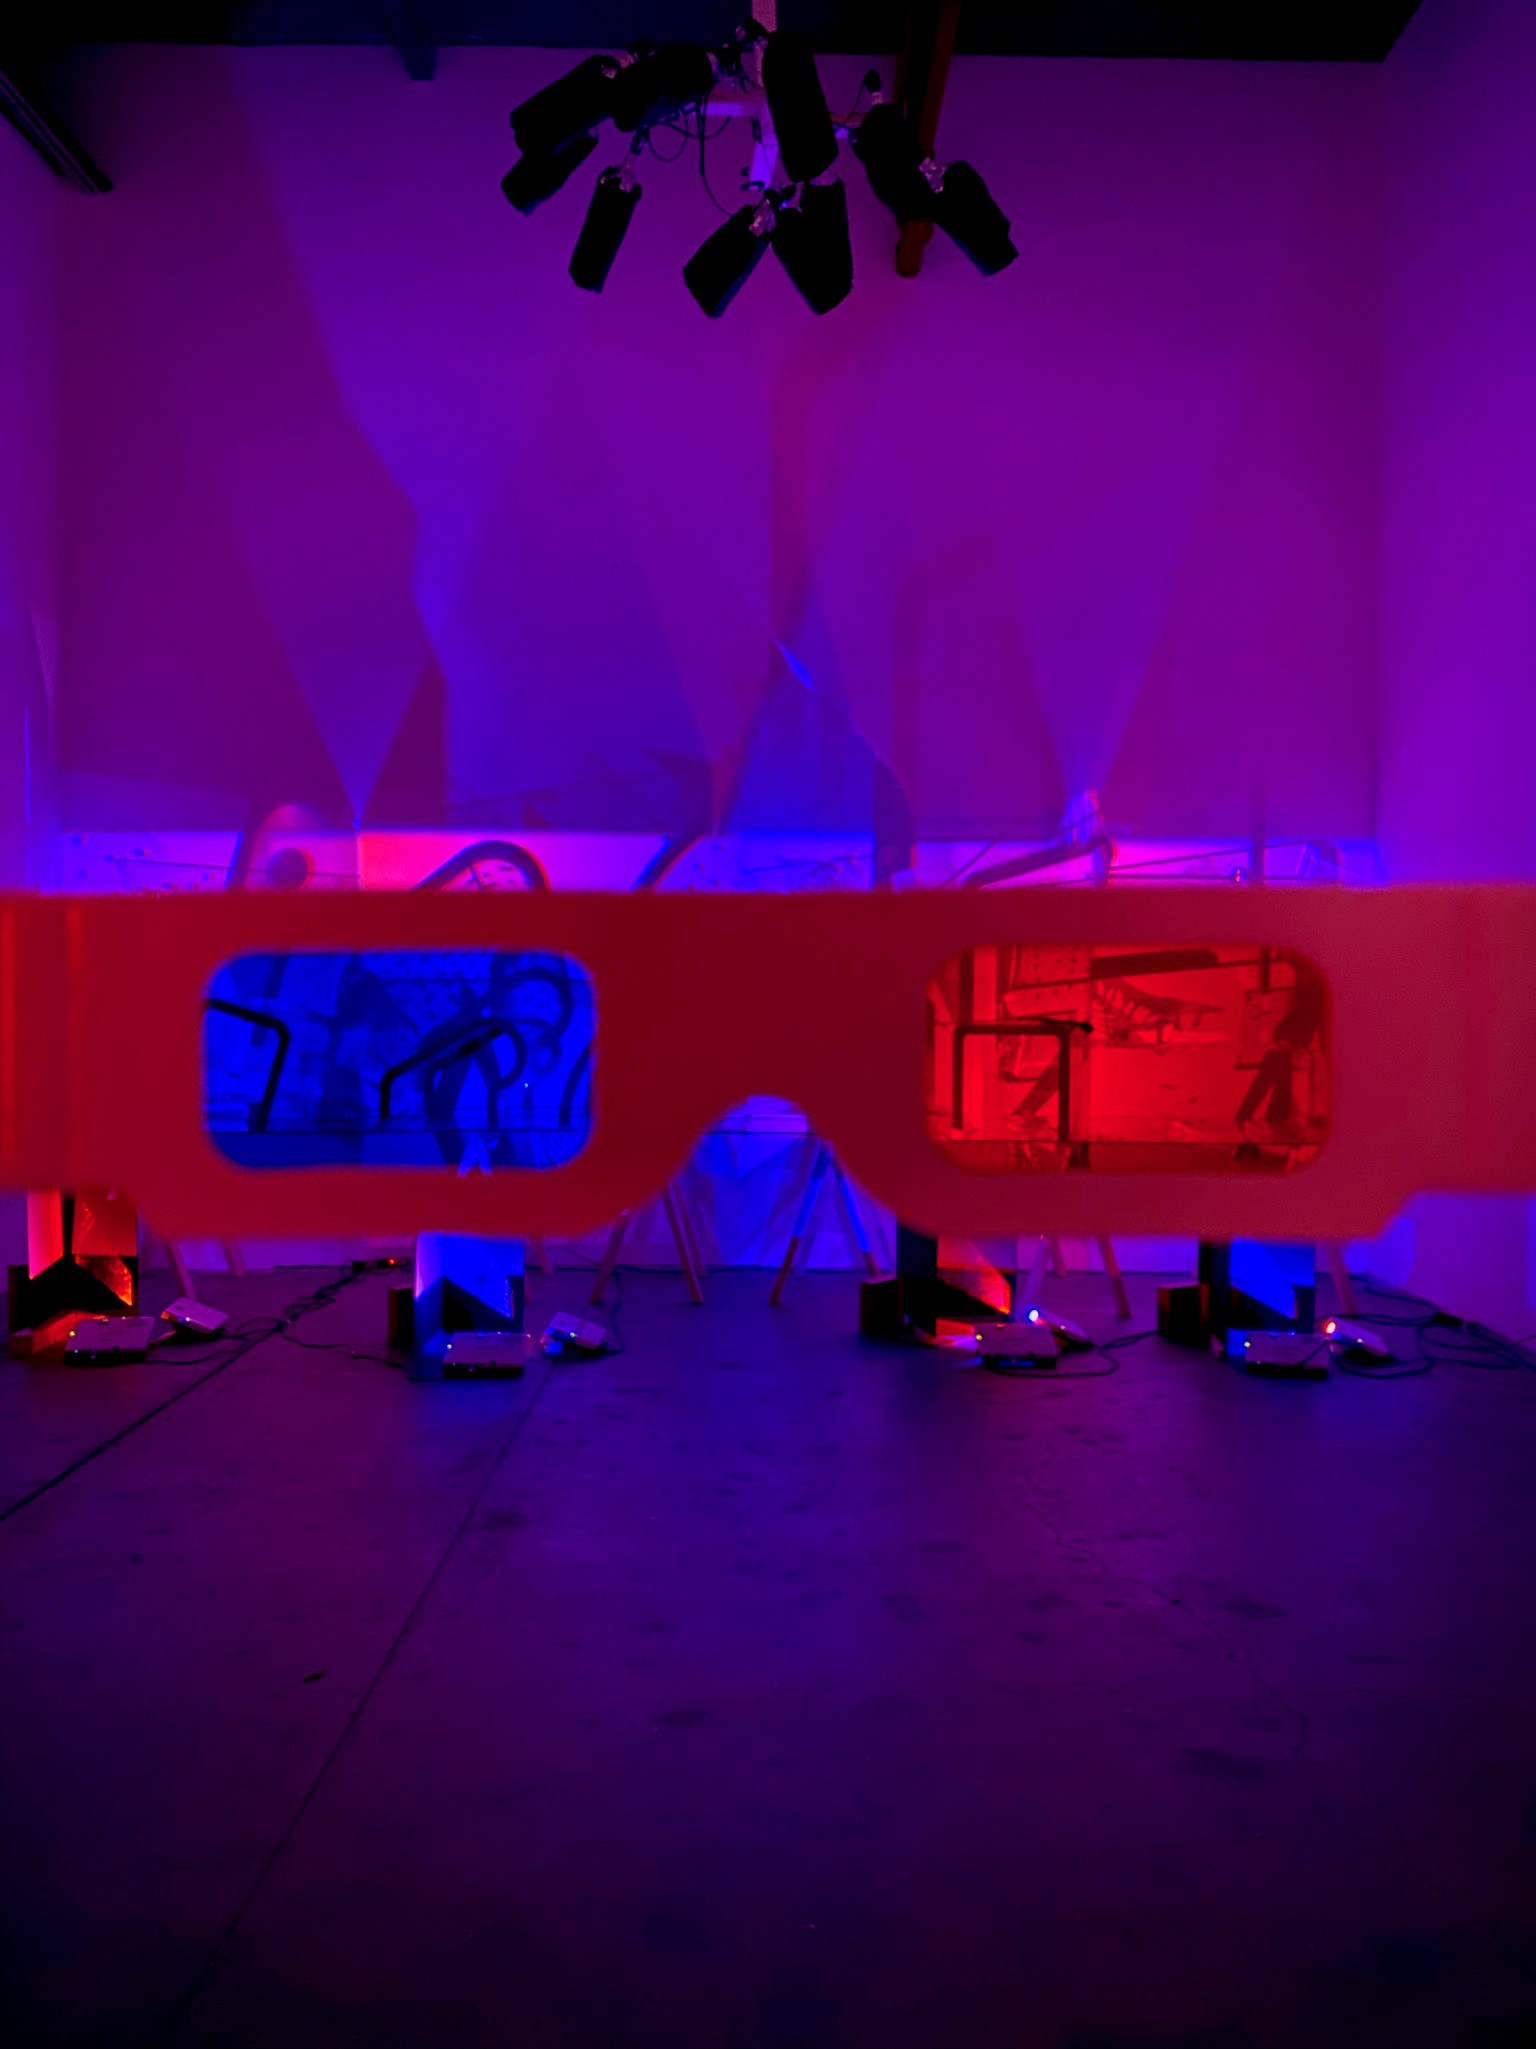 3D glasses held up in front of a piece of light artwork that becomes a stereoscopic image, part of EDGE OF LIGHT exhibition.